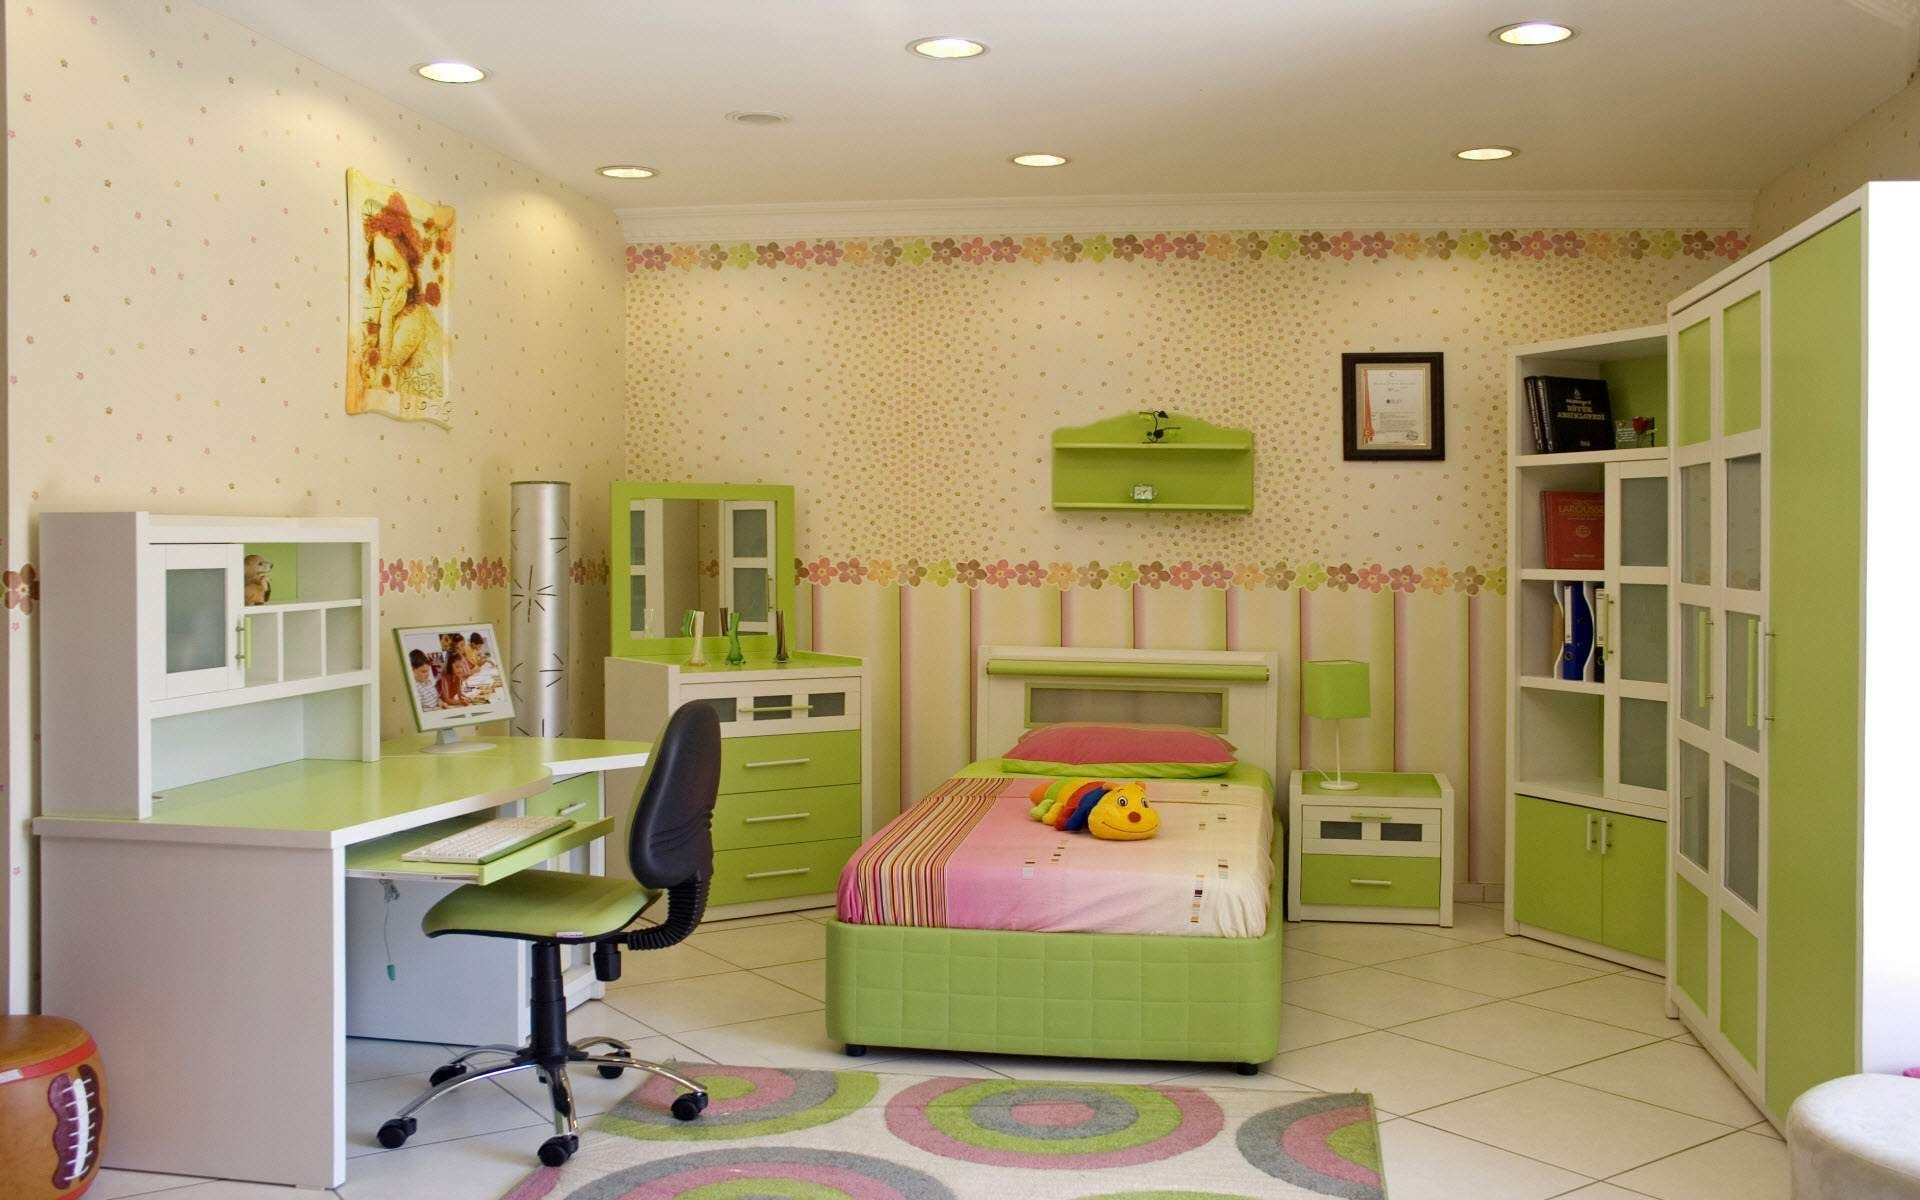 Bed pillow doll cabinet table chair rug lamps wallpaper home